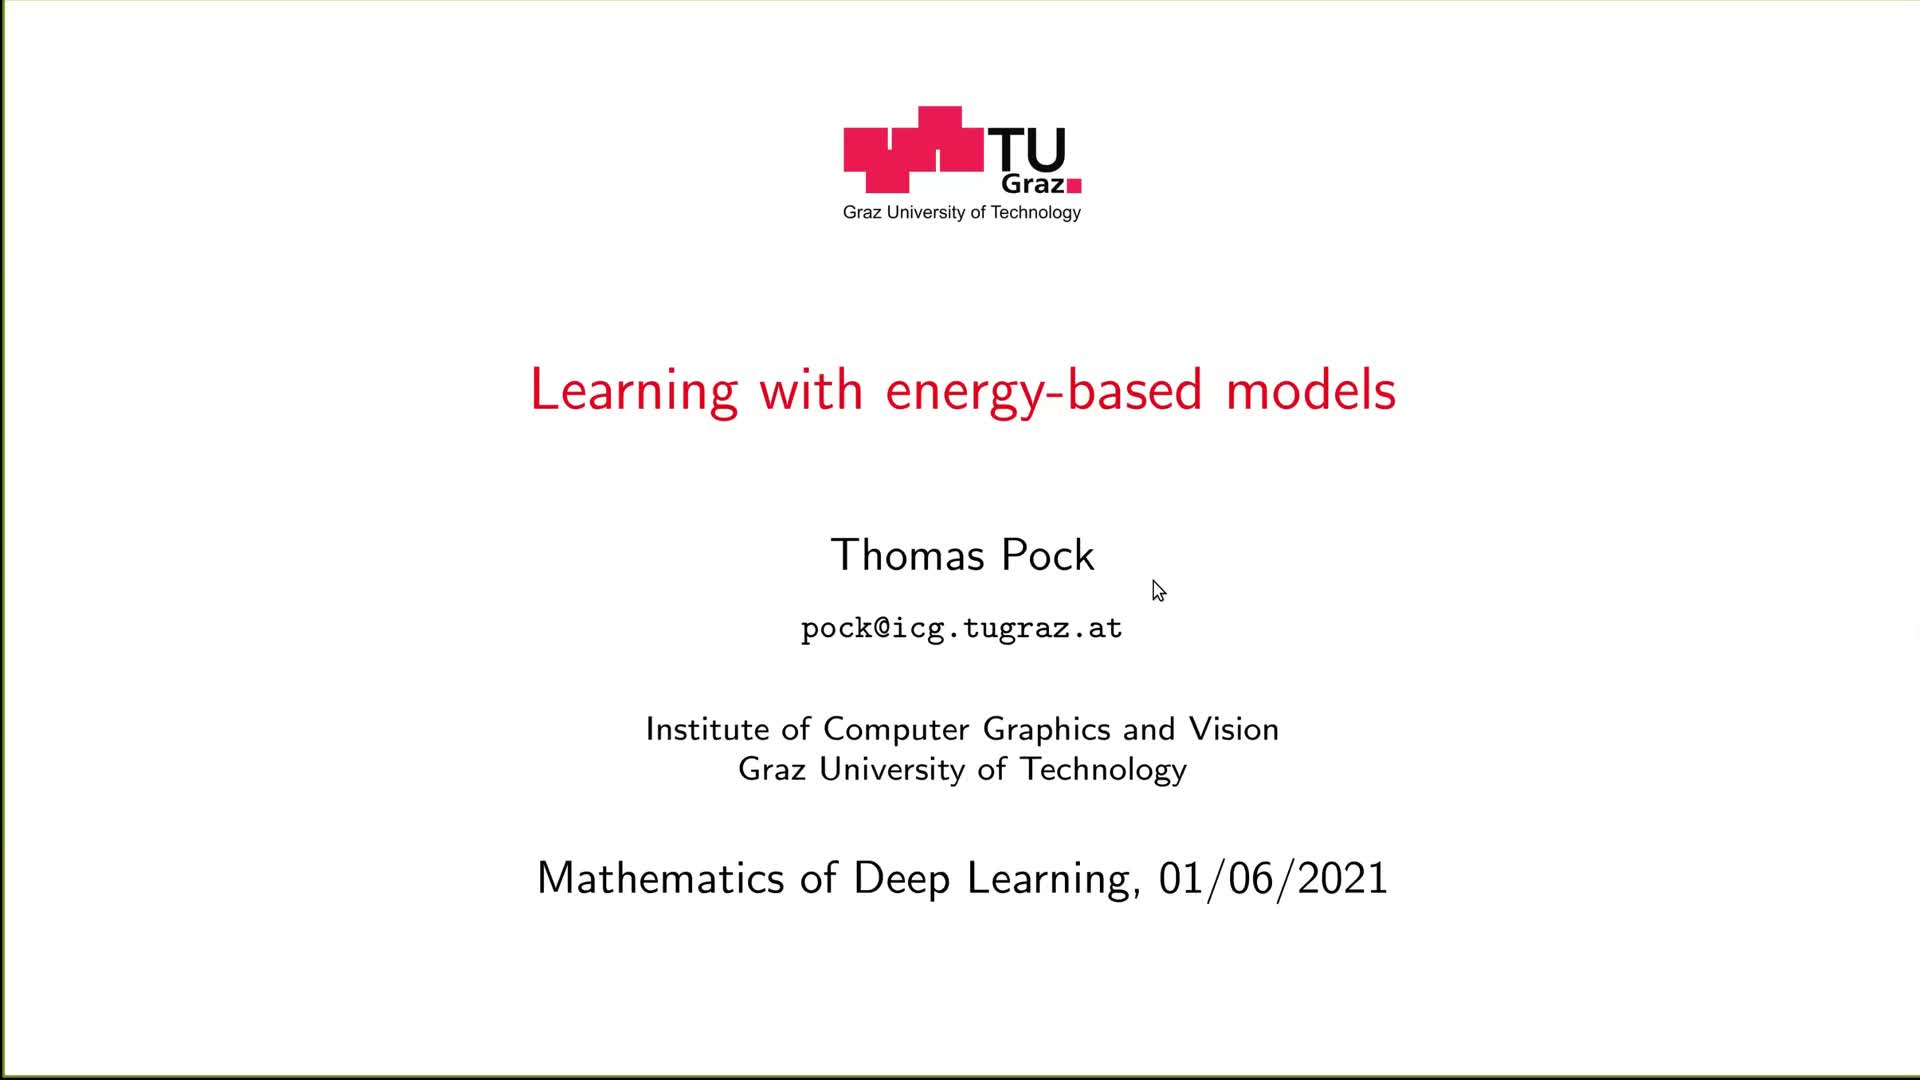 Learning with energy-based models preview image